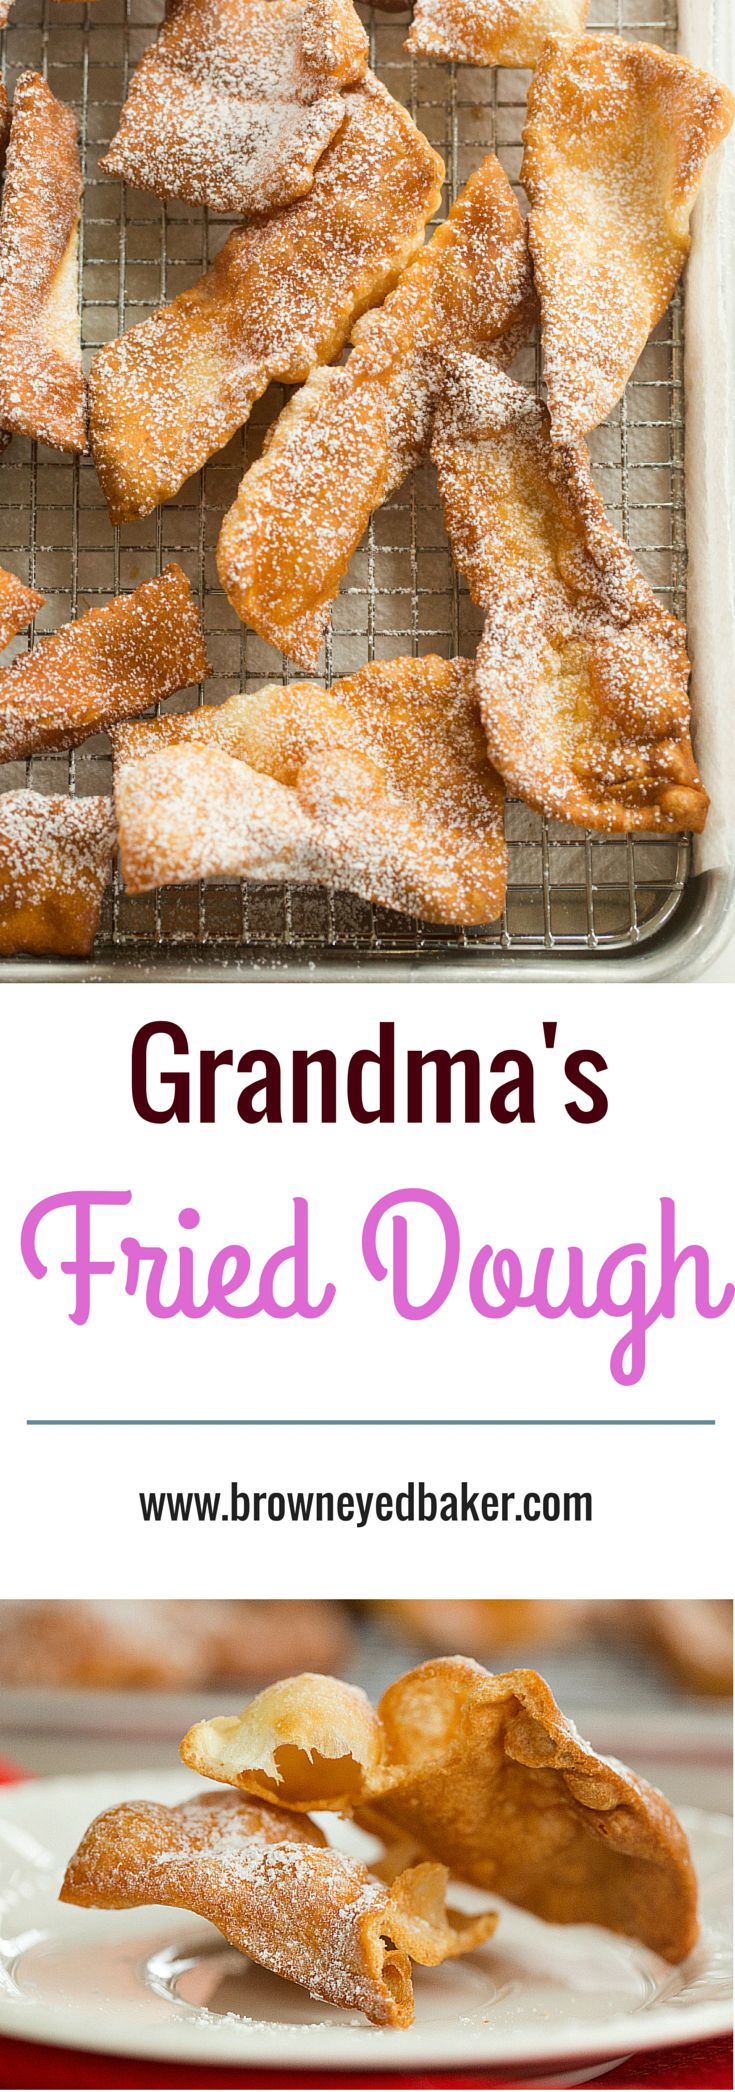 My grandma's recipe for fried dough - an Easter tradition! | browneyedbaker.com